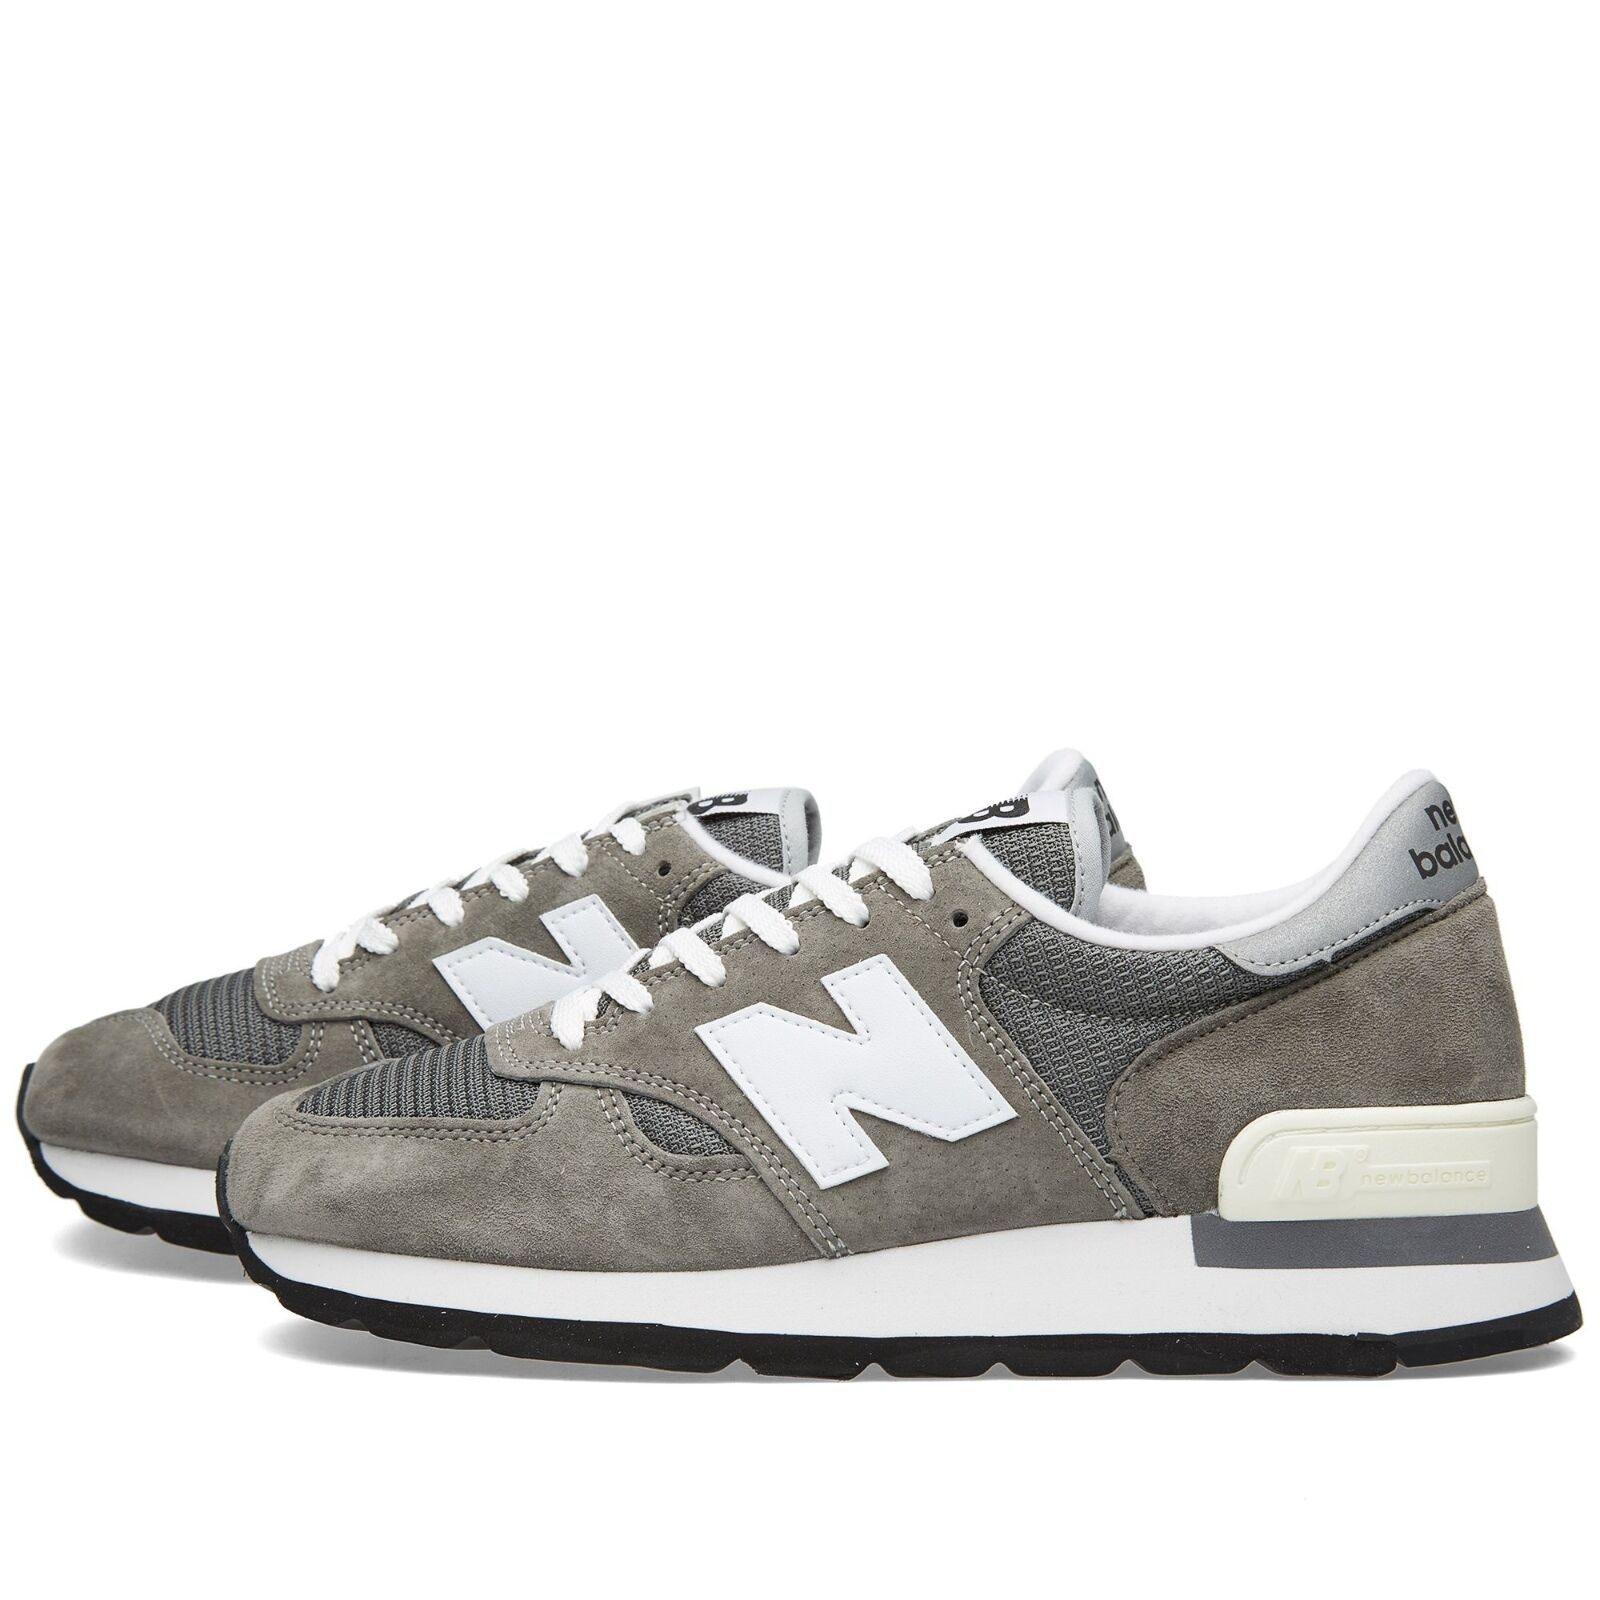 NEW BALANCE zapatos  STYLE M990GRY Color gris MADE IN THE USA